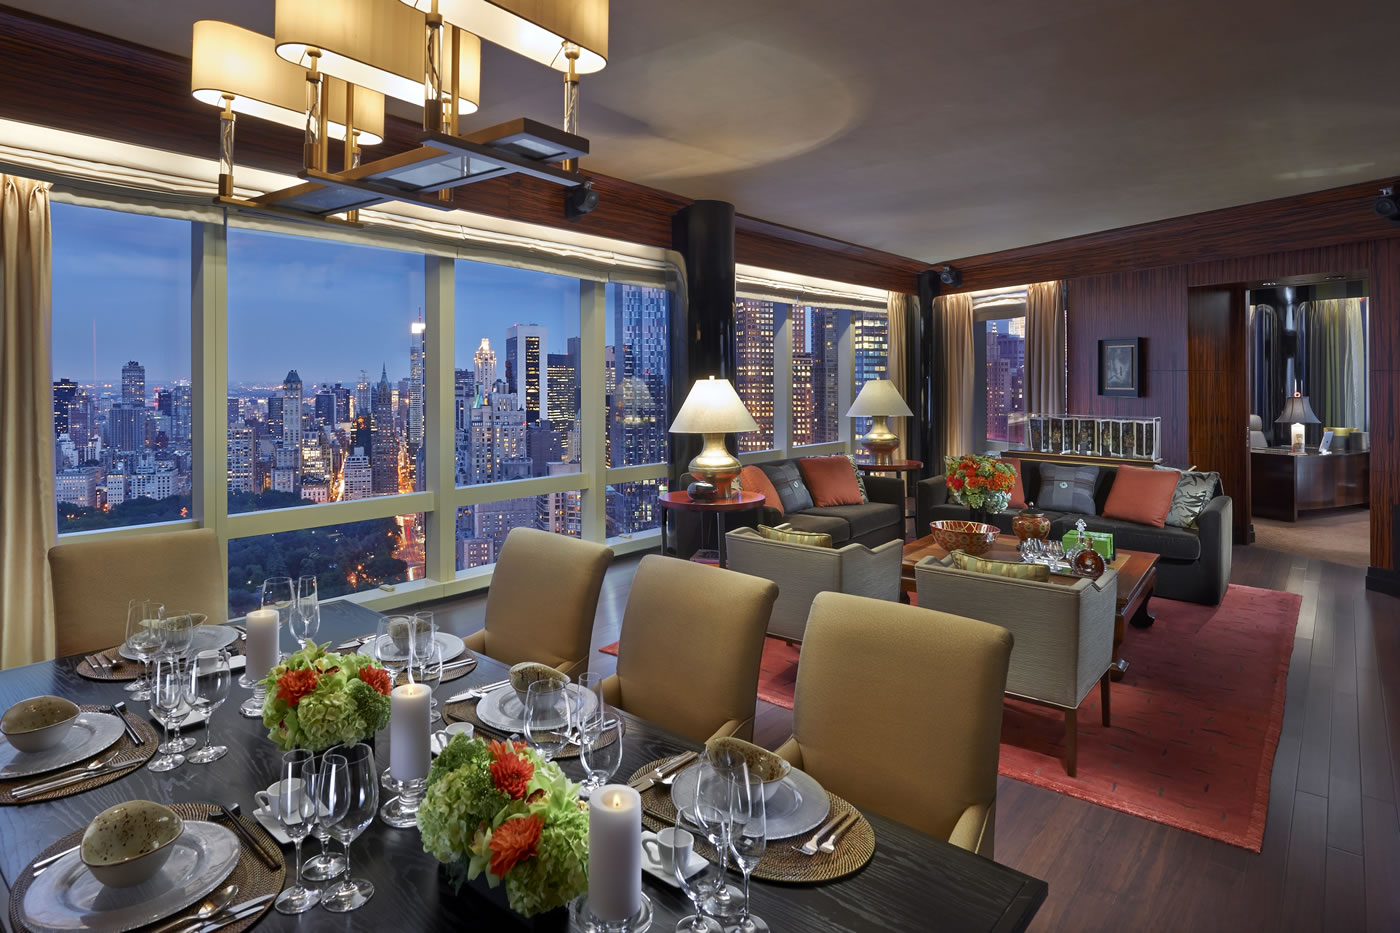 In a mood to splurge? Here are the 7 most decadent suites ...